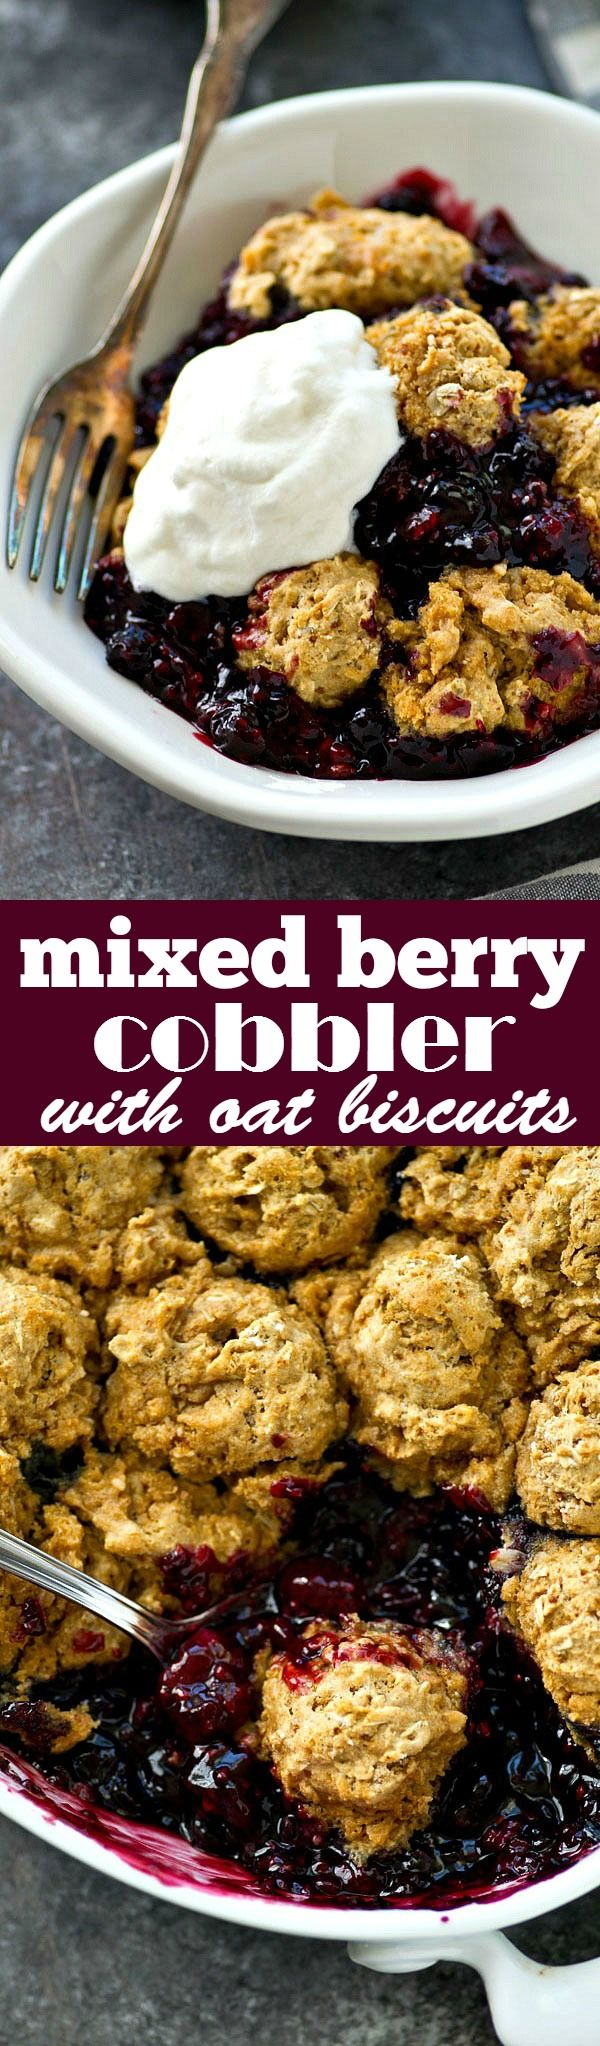 Check out Mixed Berry Cobbler with Oat Biscuits. It's so ...